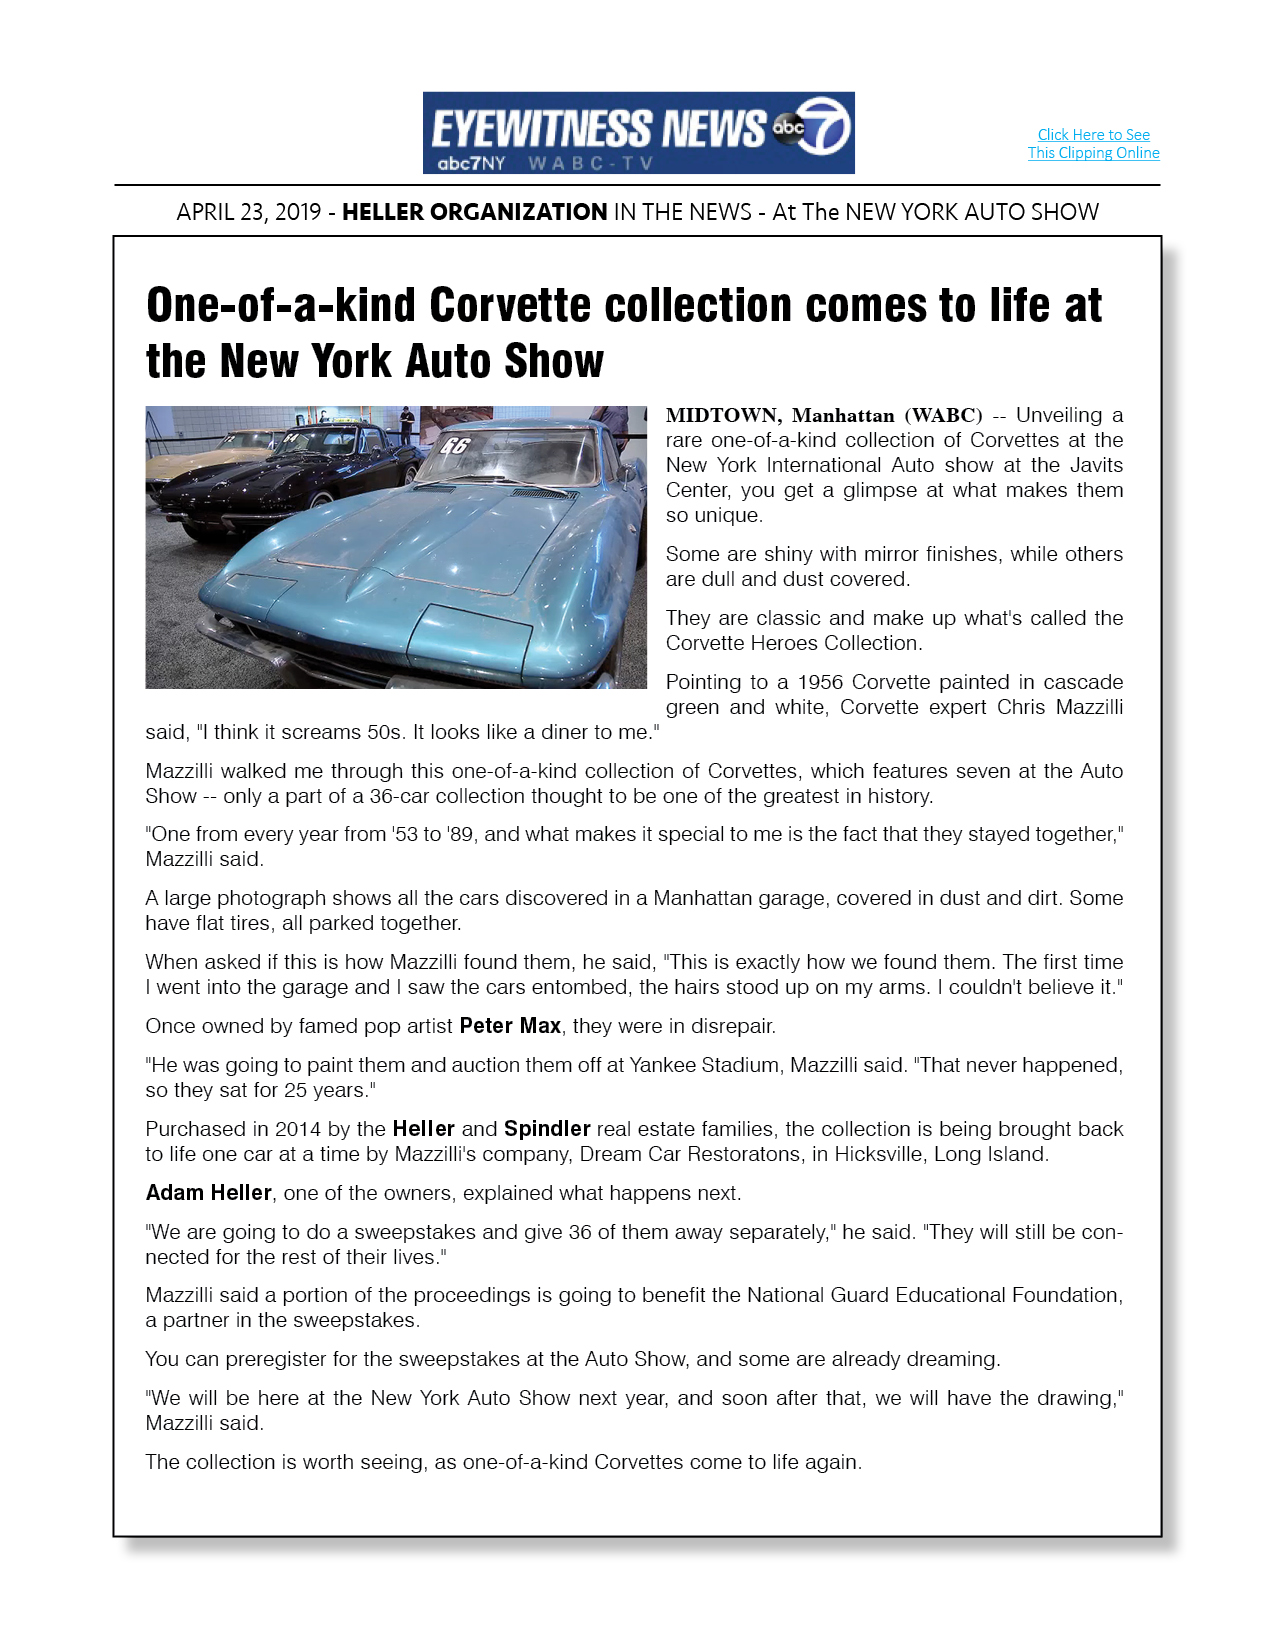 042319-ABC-OL-HELLER-Corvette collection